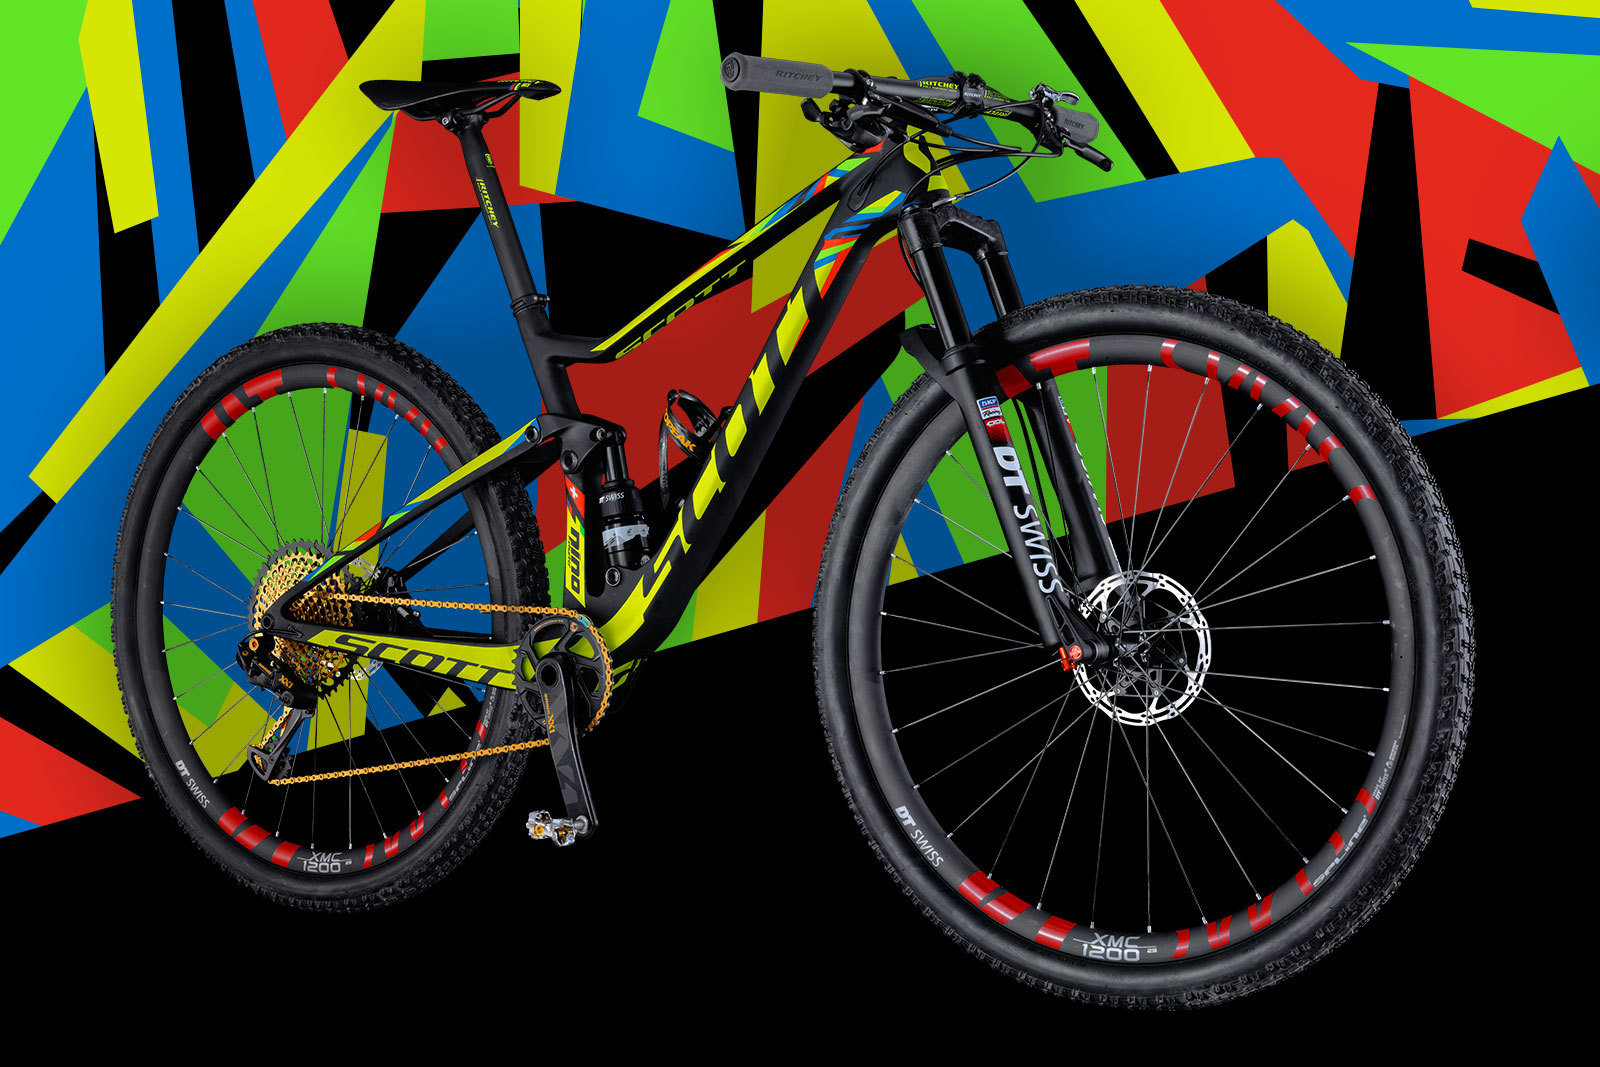 Spark RC 900 Worldcup Rio Edition_Close up image_2016_BIKE_SCOTT Sports_07